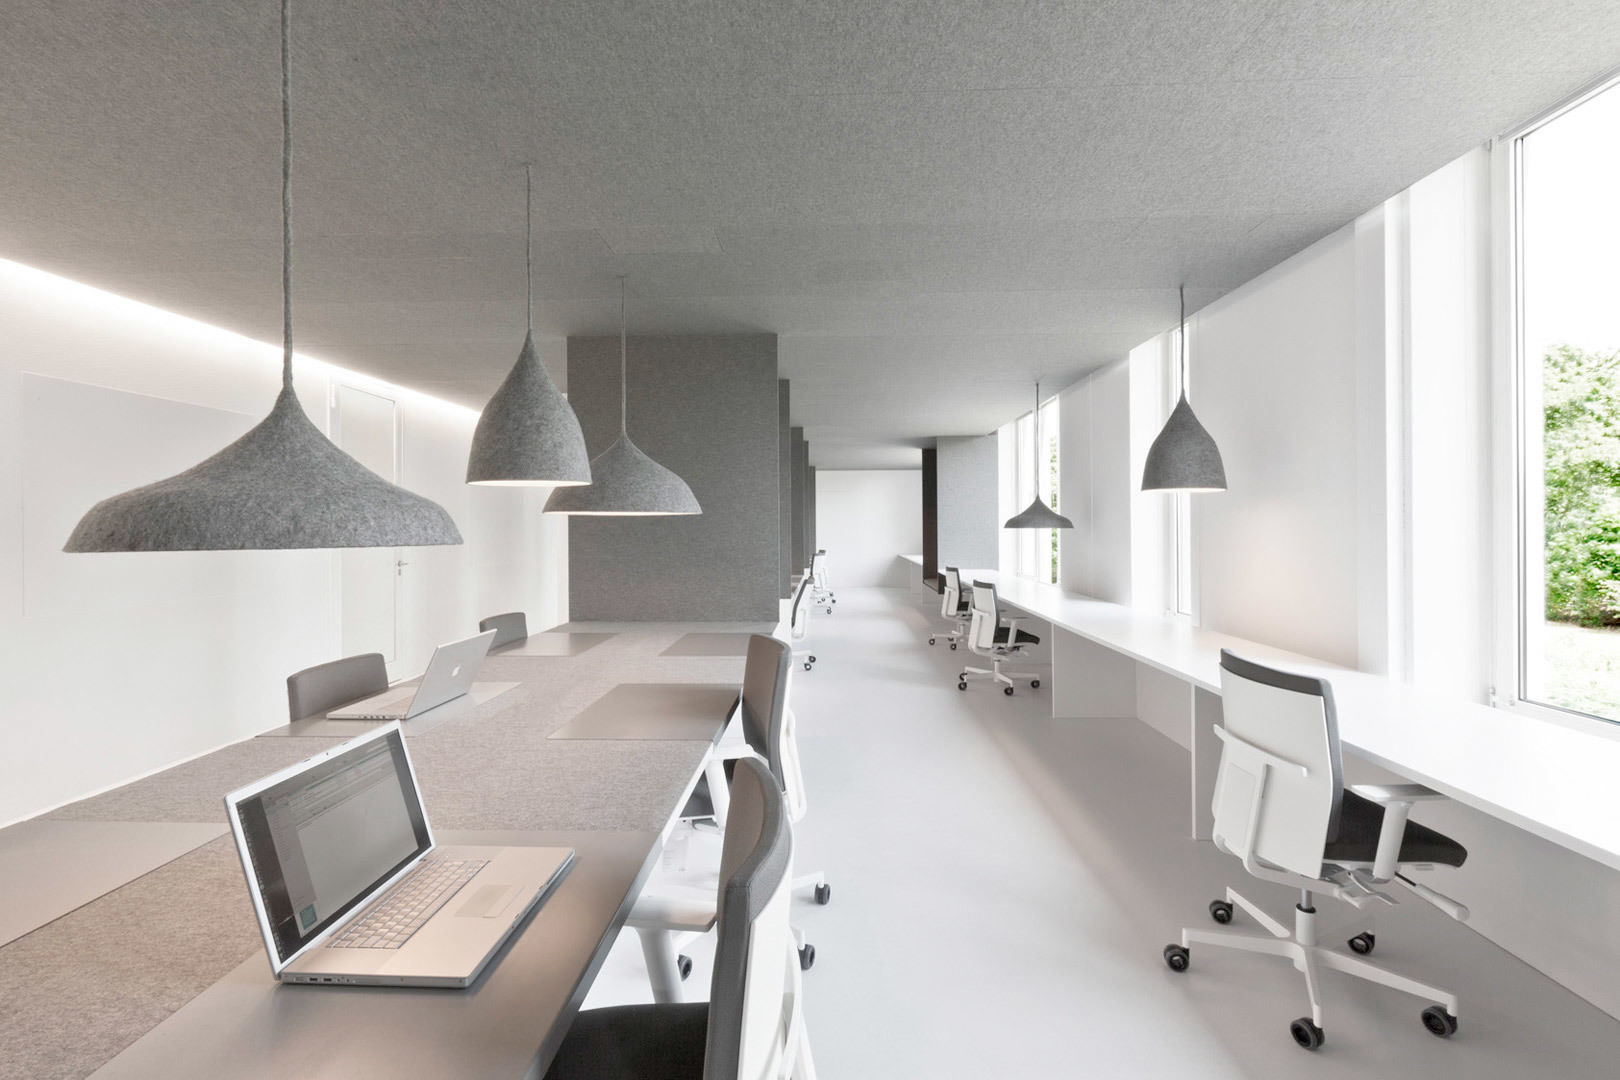 Office 04 ddb tribal von i29 interior architects